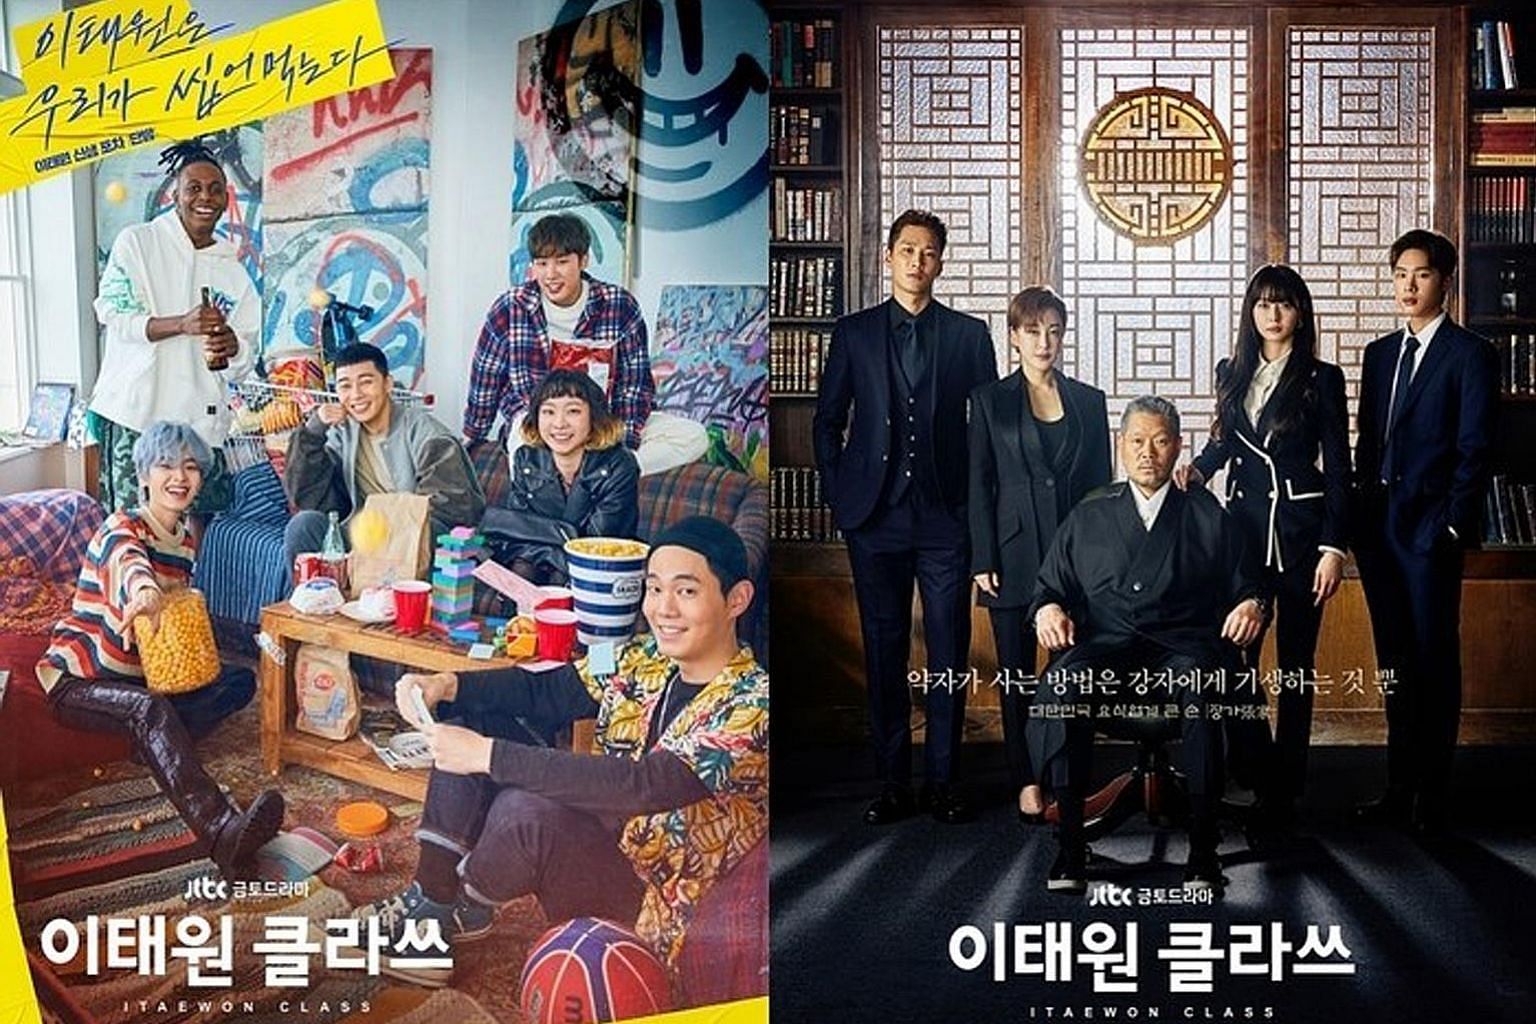 Two promotional posters for the Korean drama Itaewon Class juxtaposing the haves (far right) and have-nots in the show. The drama tells the story of a former convict who turns his life around with the help of a group of friends of diverse backgrounds